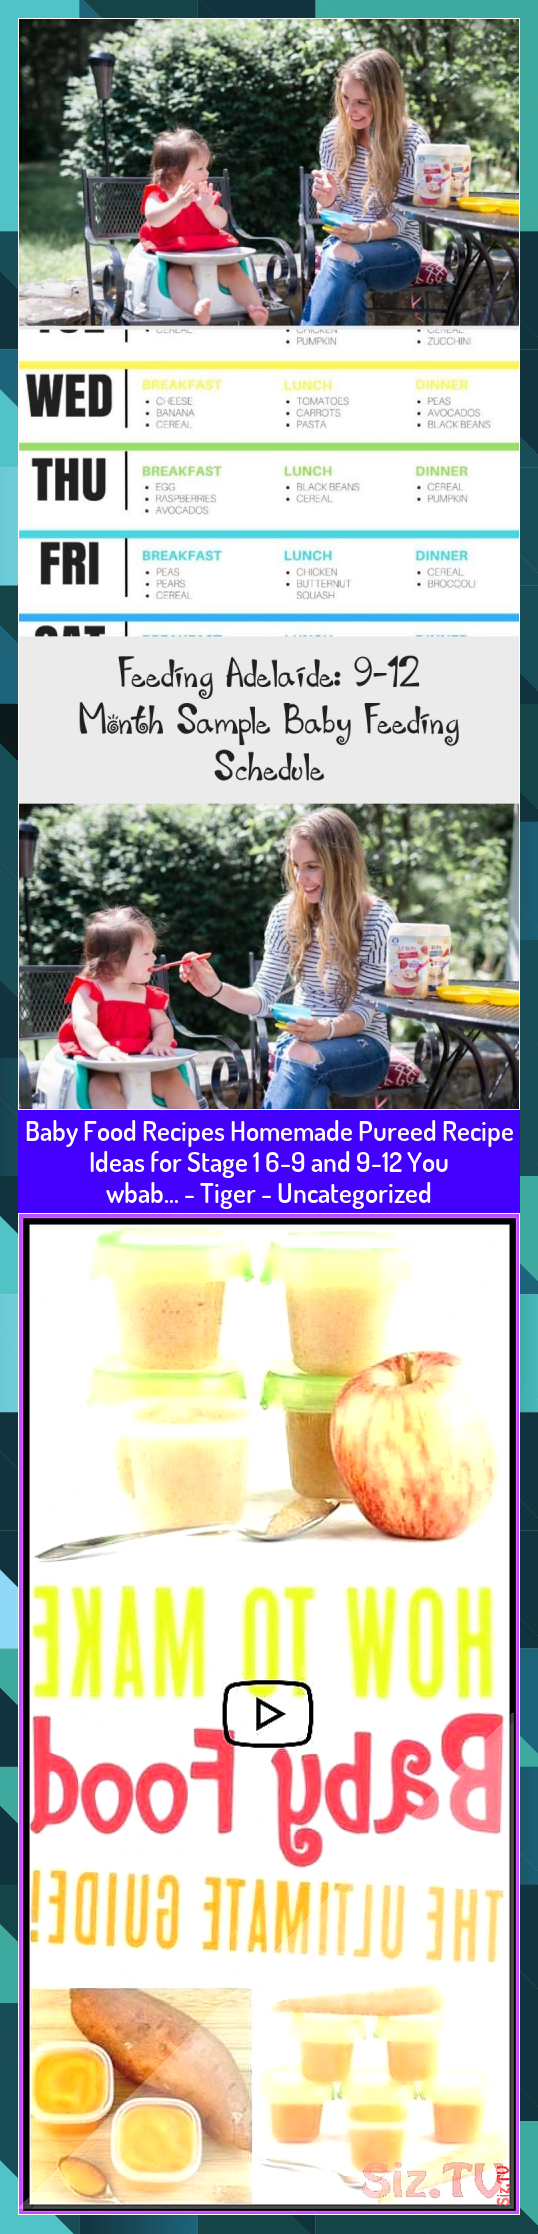 Baby Food Recipes Homemade Pureed Recipe Ideas for Stage 1 69 and 912 You wbab  Tiger  Uncategorized